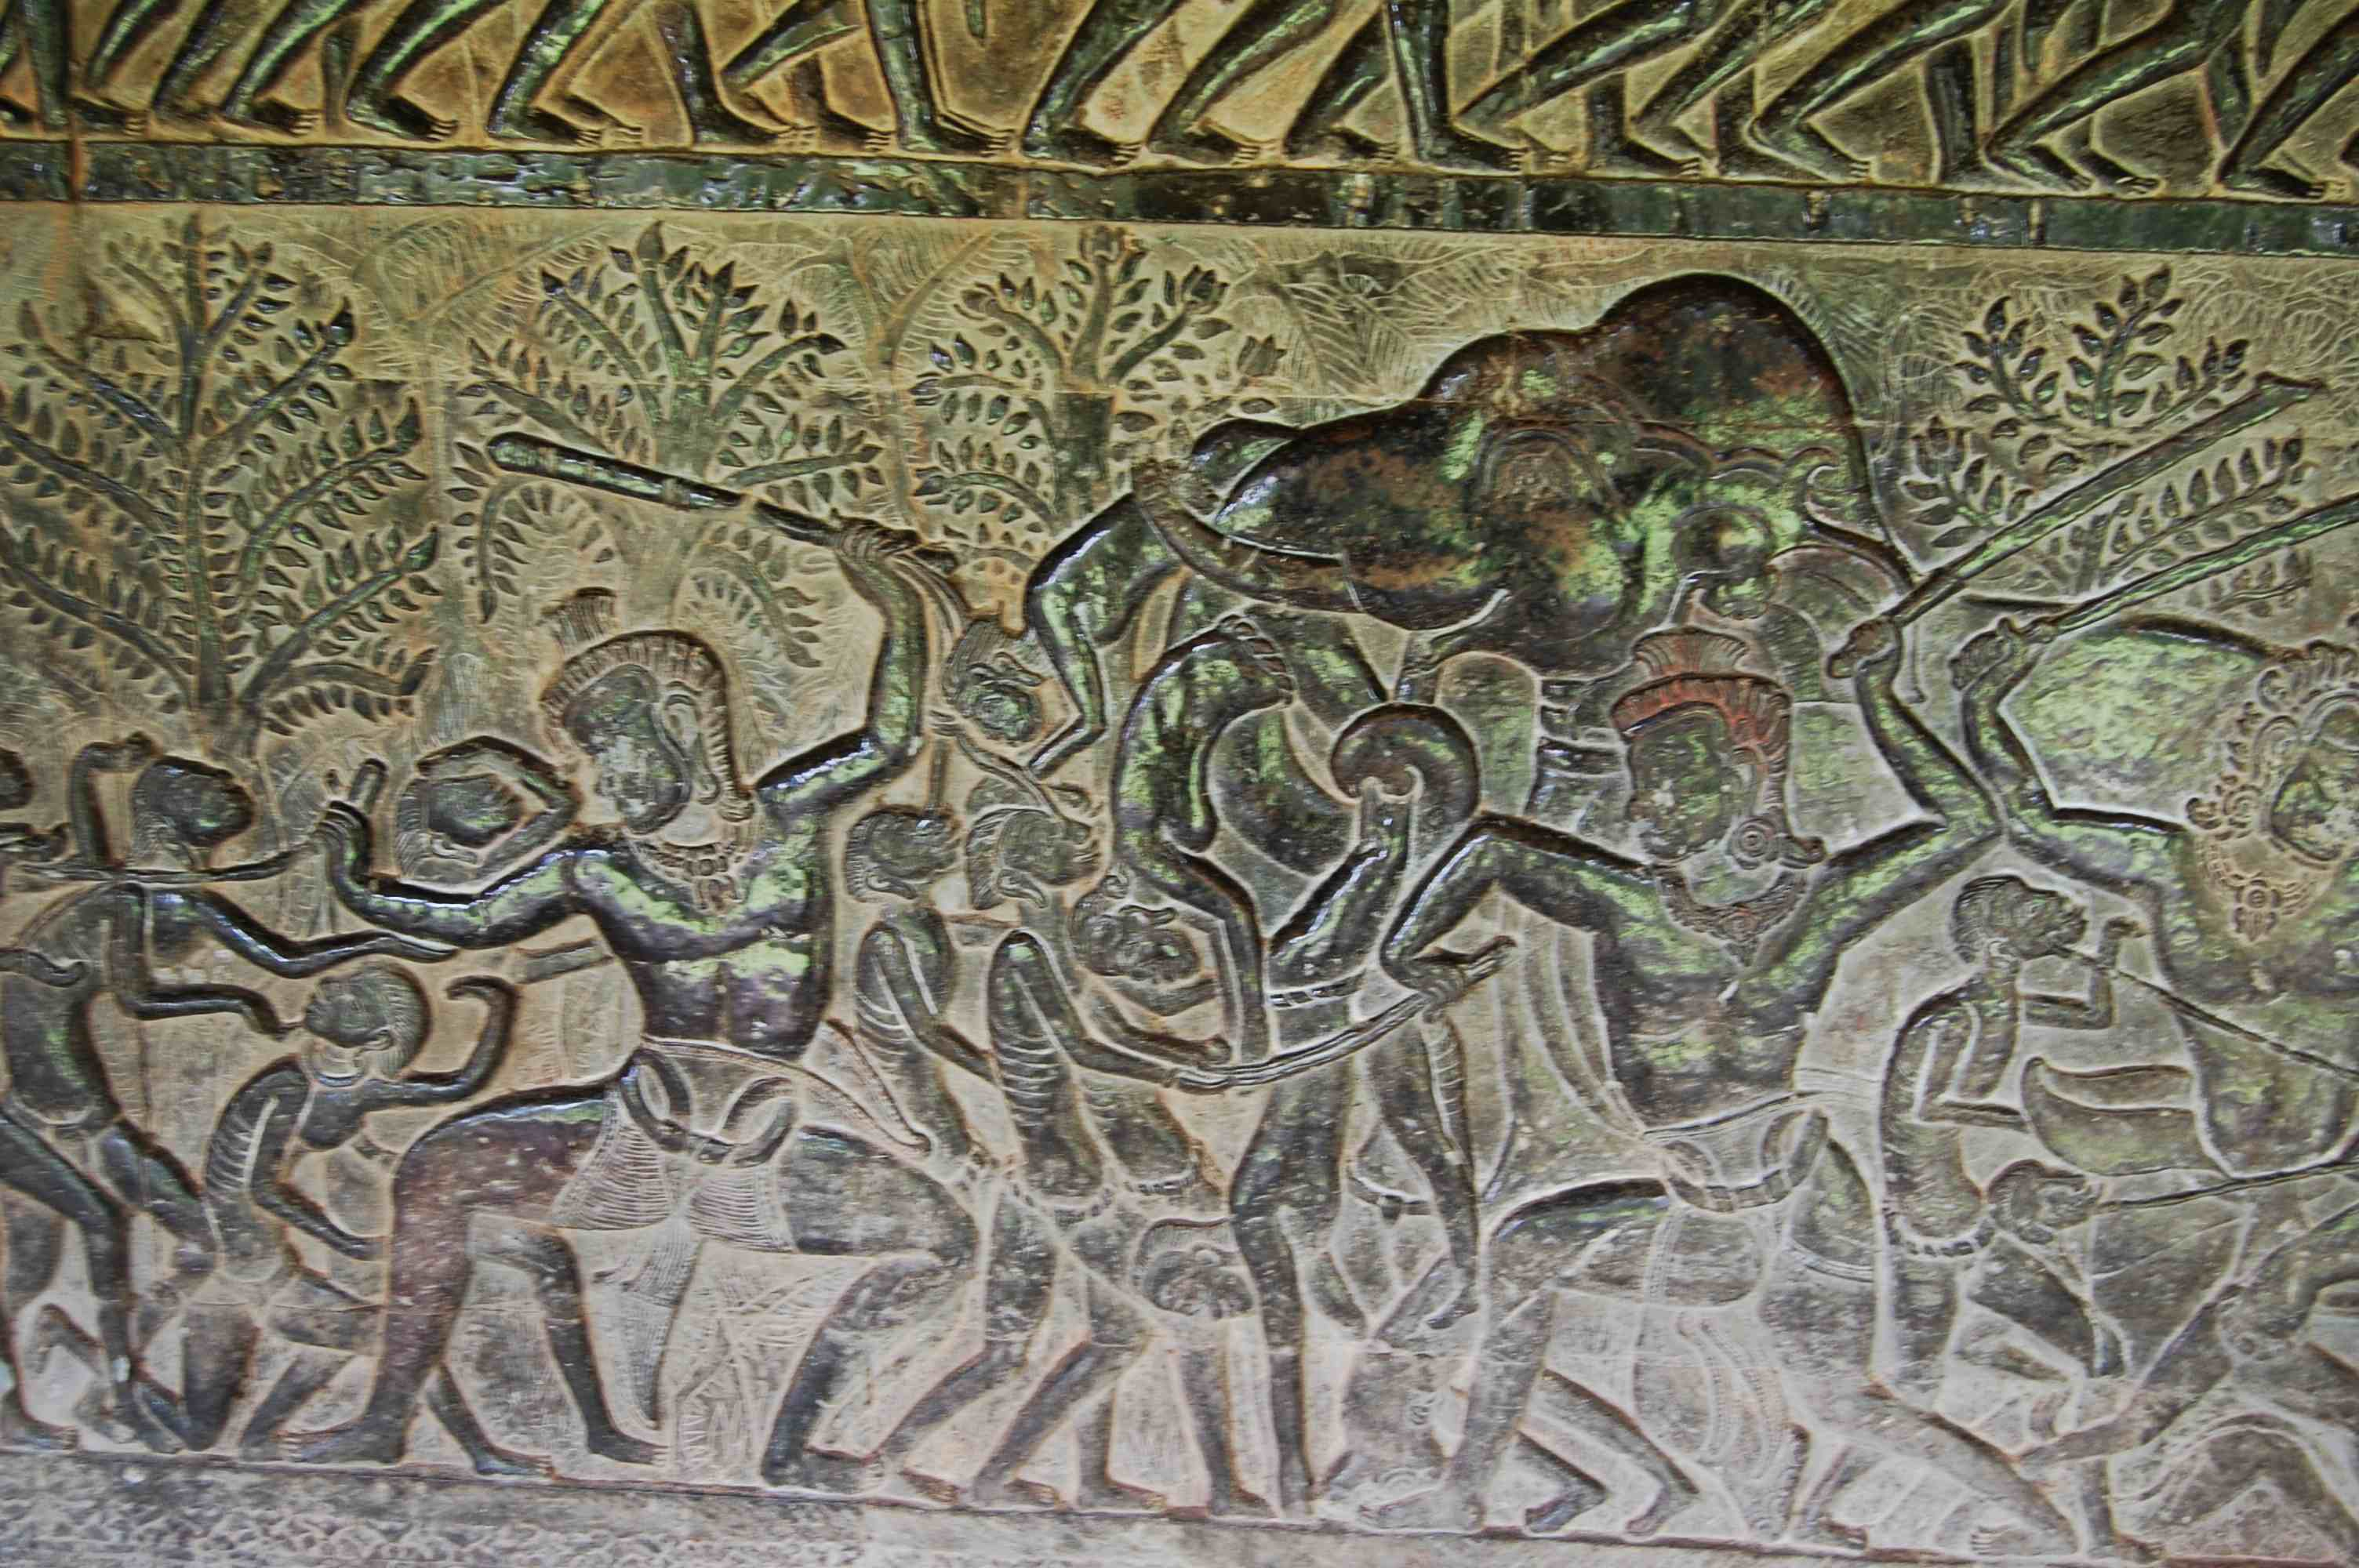 http://adamandmegstravels.files.wordpress.com/2009/08/angkor-wat-detail-shots-10.jpg